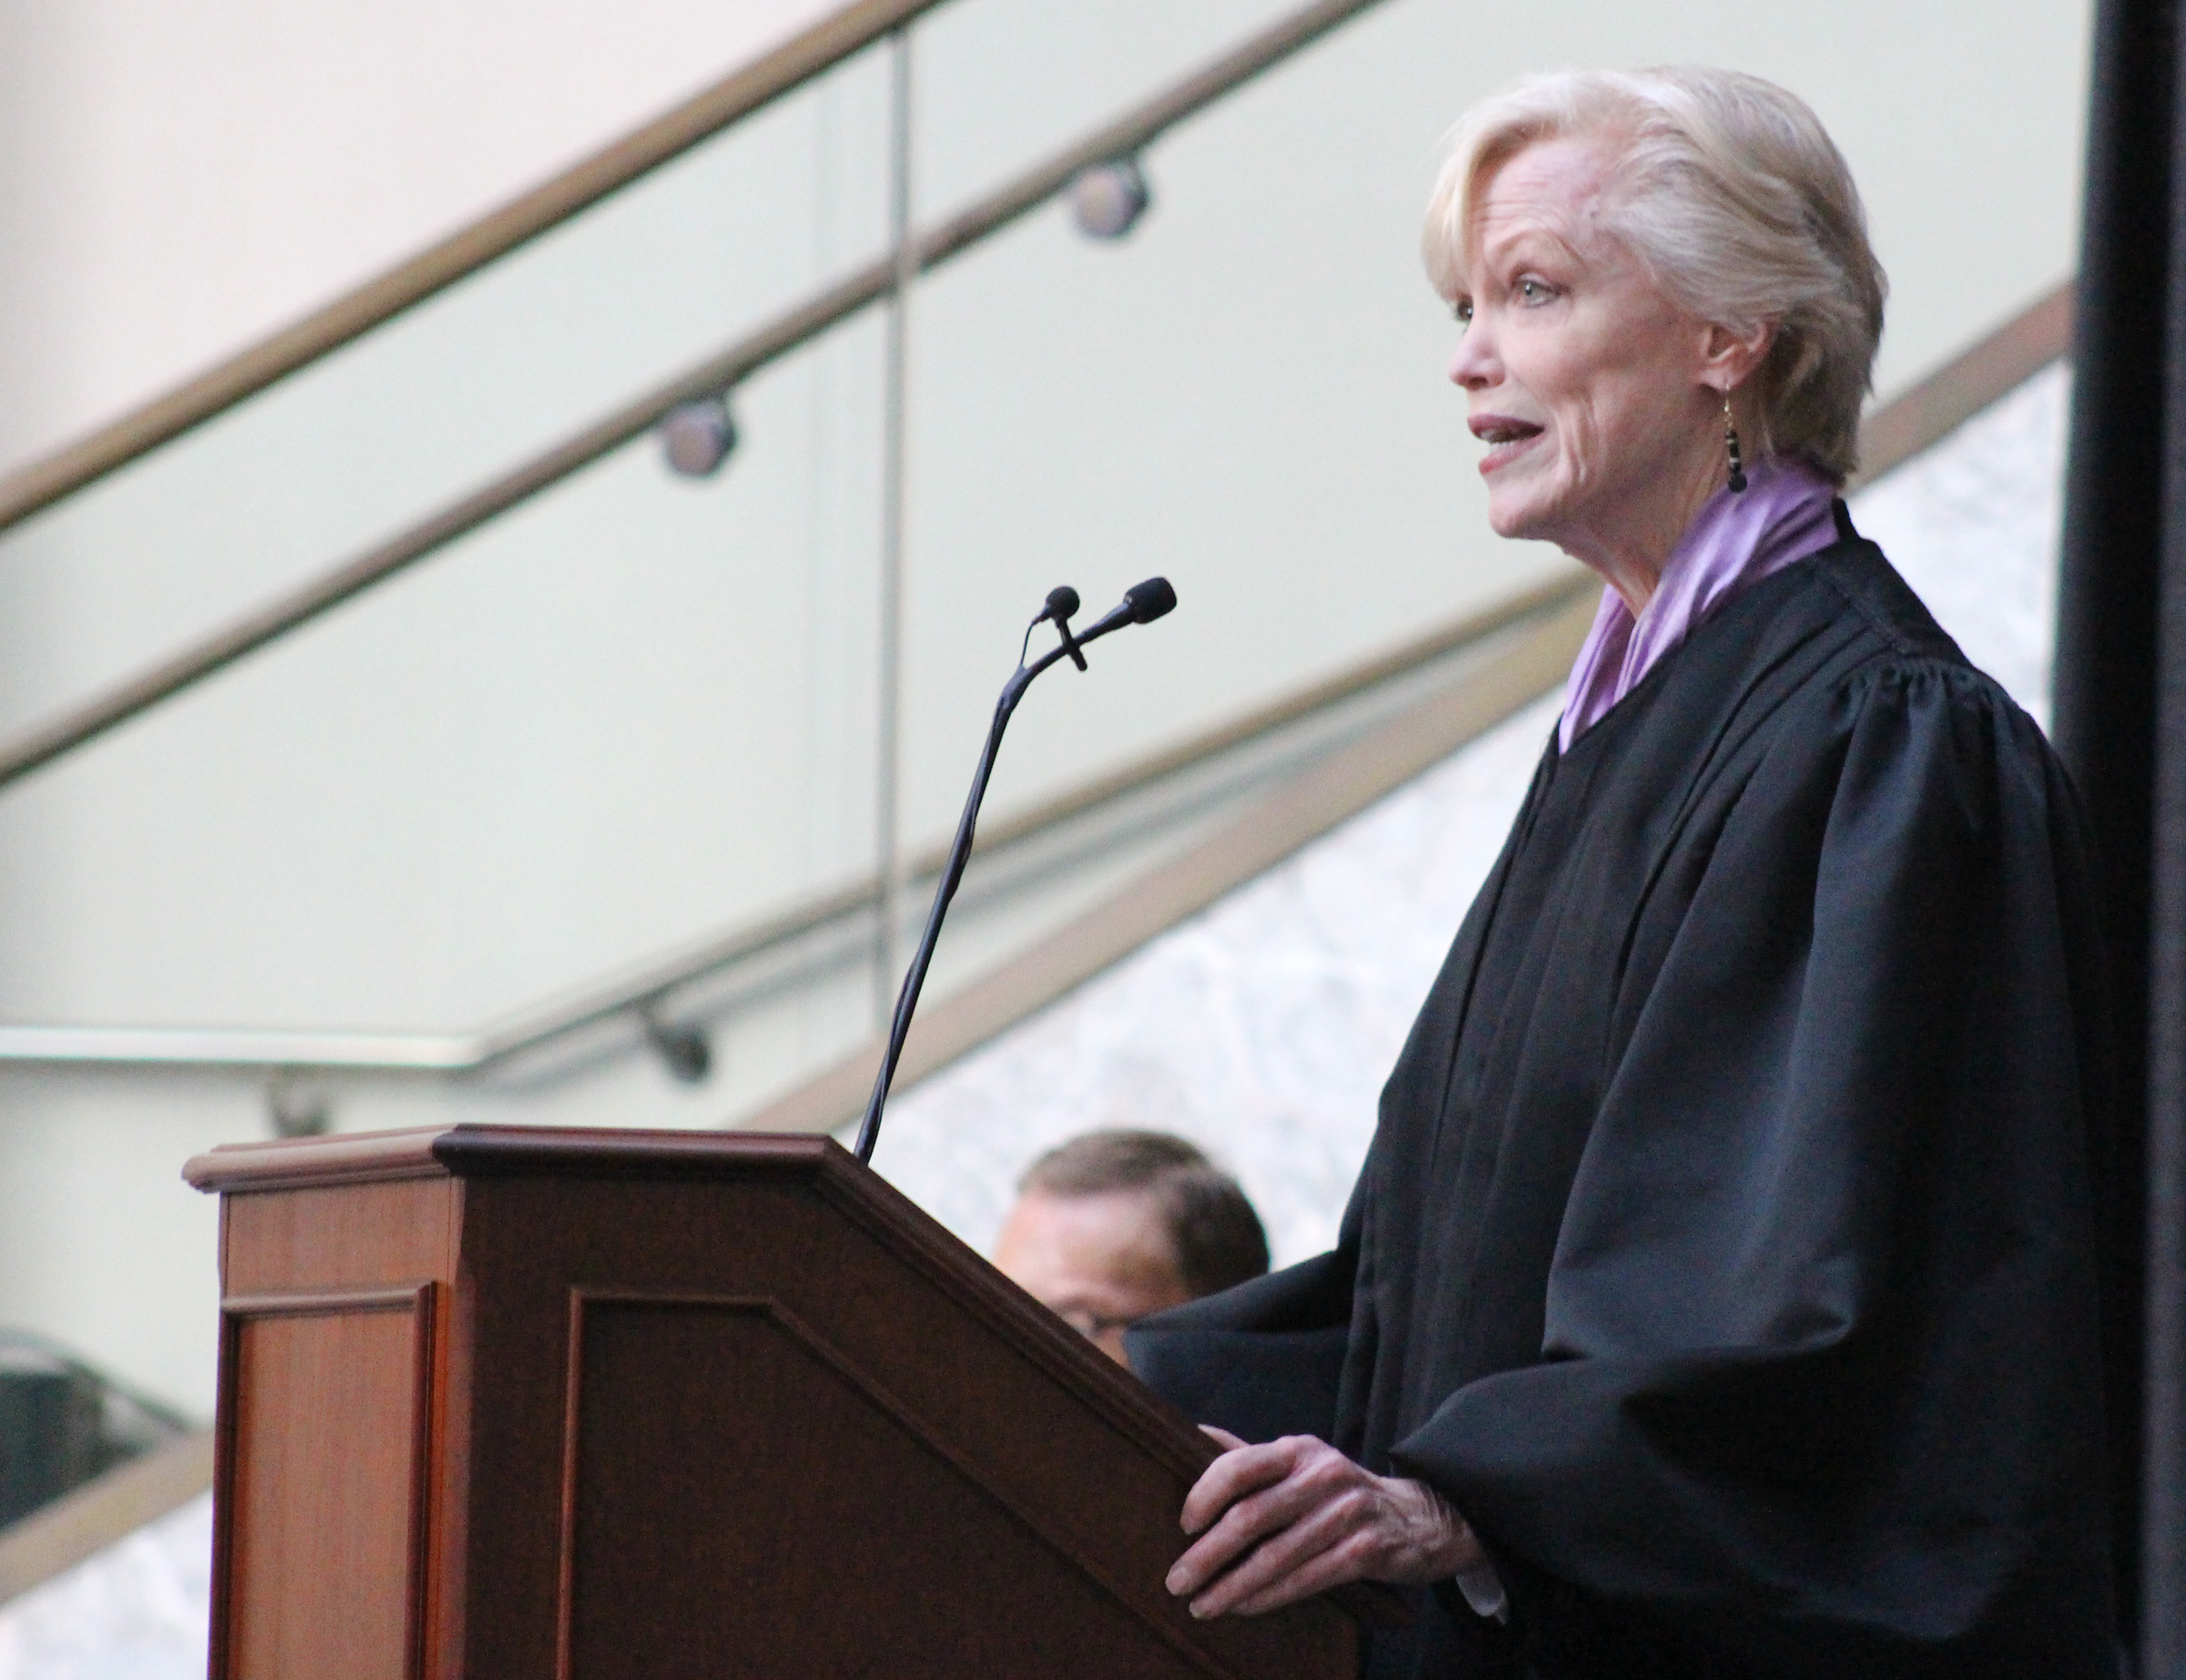 U.S. District Court Senior Judge welcomes the crowd and makes introductions at Brian C. Buescher's investiture ceremony at the Hruska Federal Courthouse on Friday, Nov. 15, 2019. (Photo by Scott Stewart)